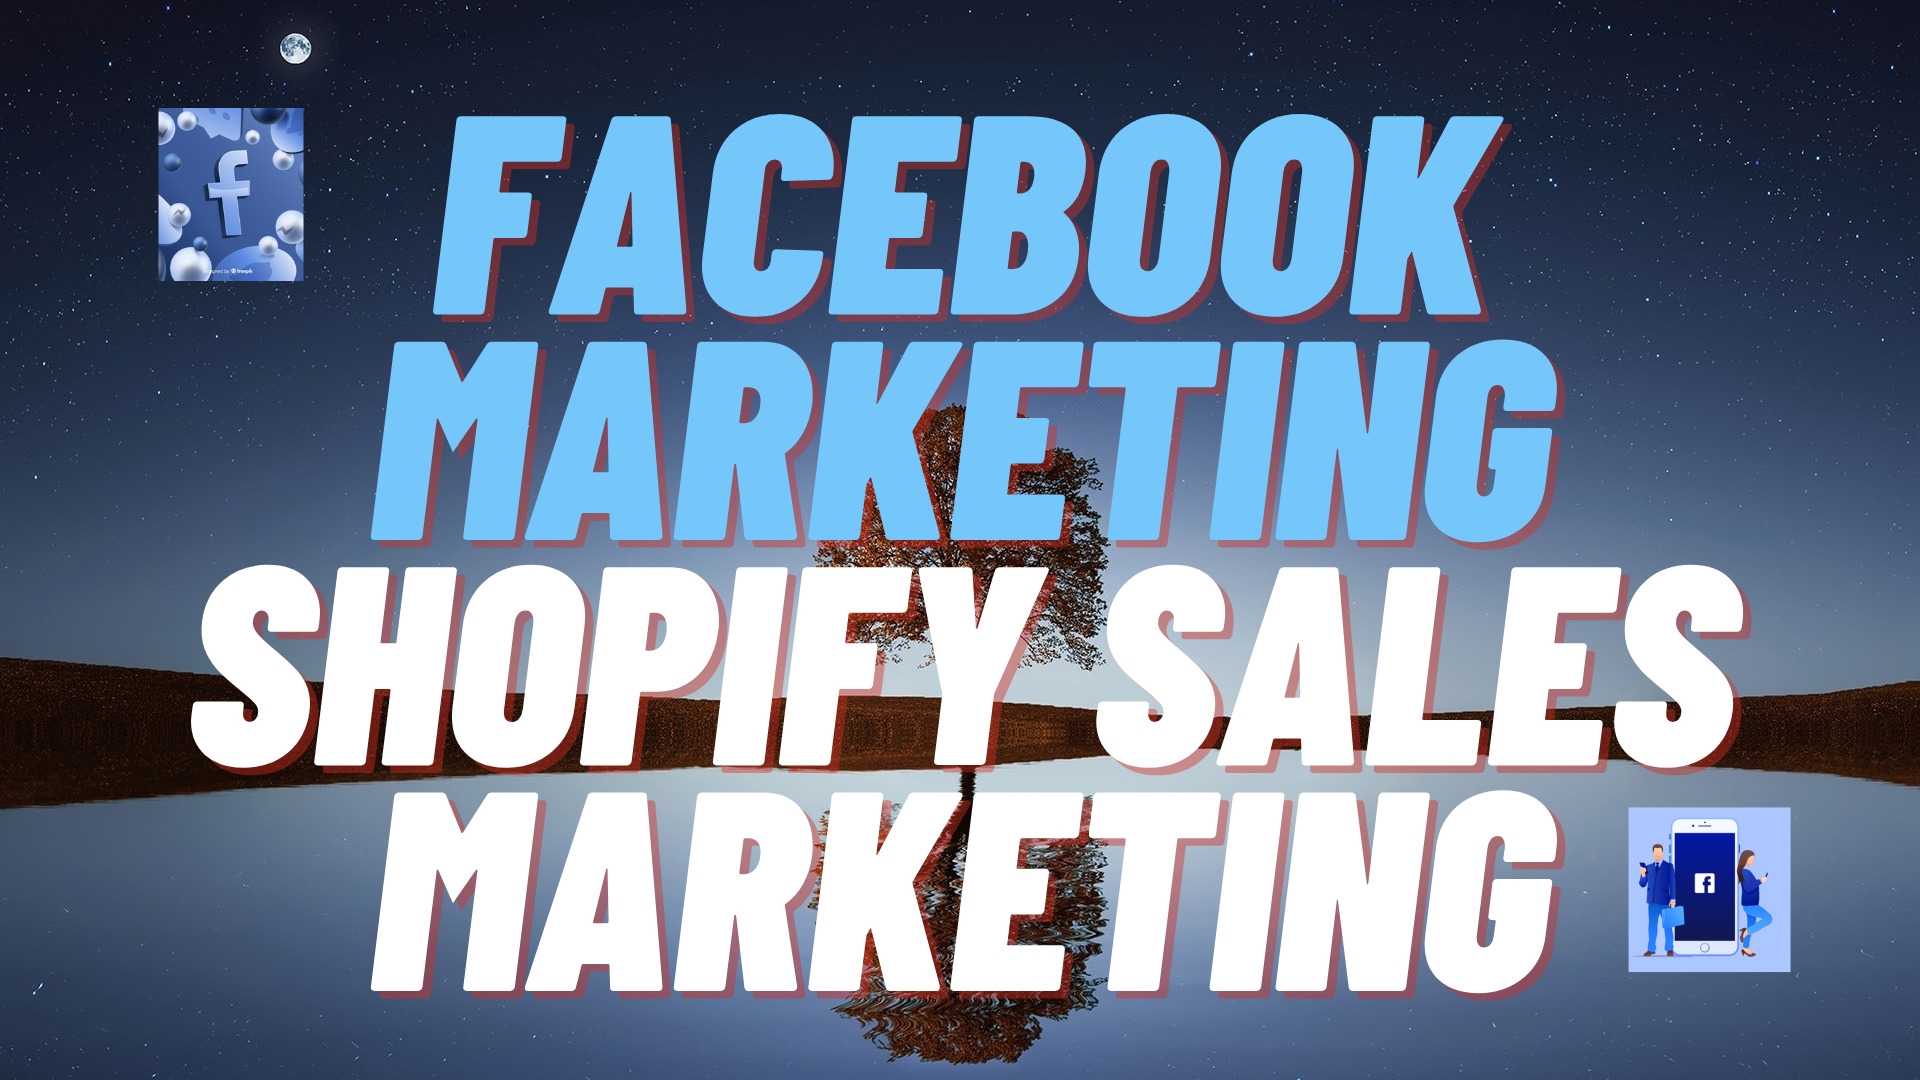 I will do facebook marketing promotion ads, shopify sales marketing promotion, FiverrBox